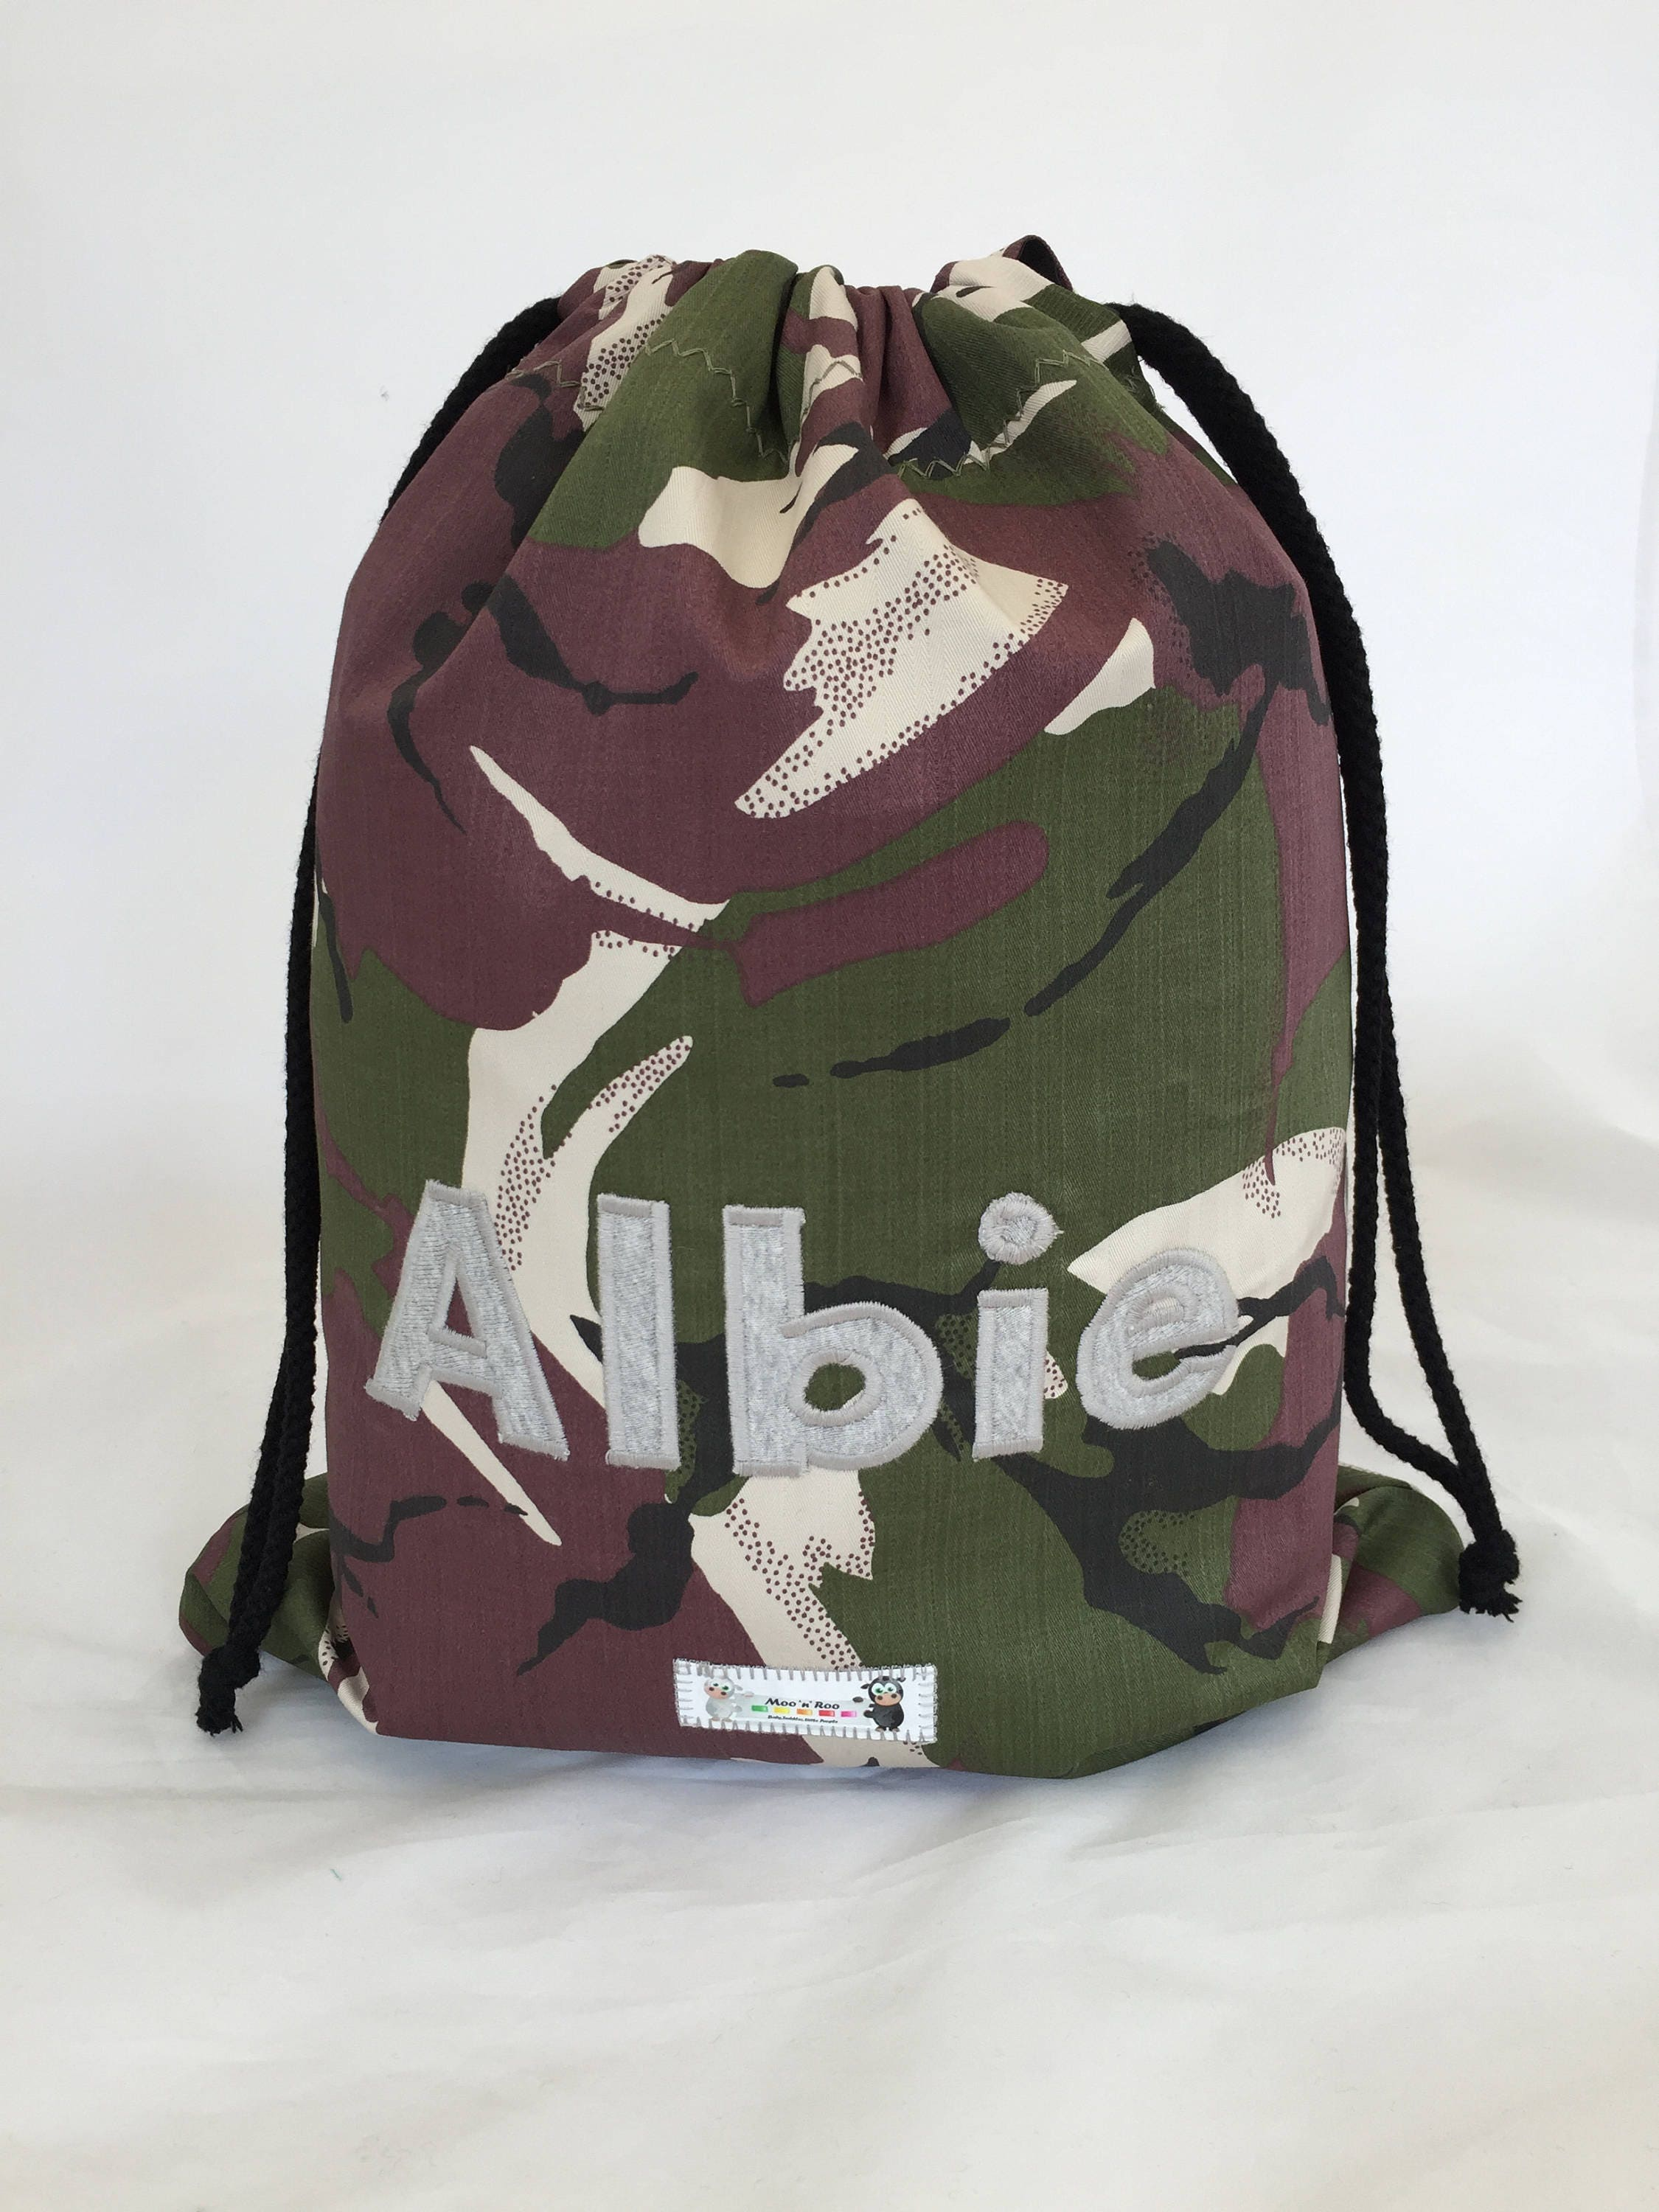 Waterproof Backpack Camouflage   ReGreen Springfield 6a0e40b78a